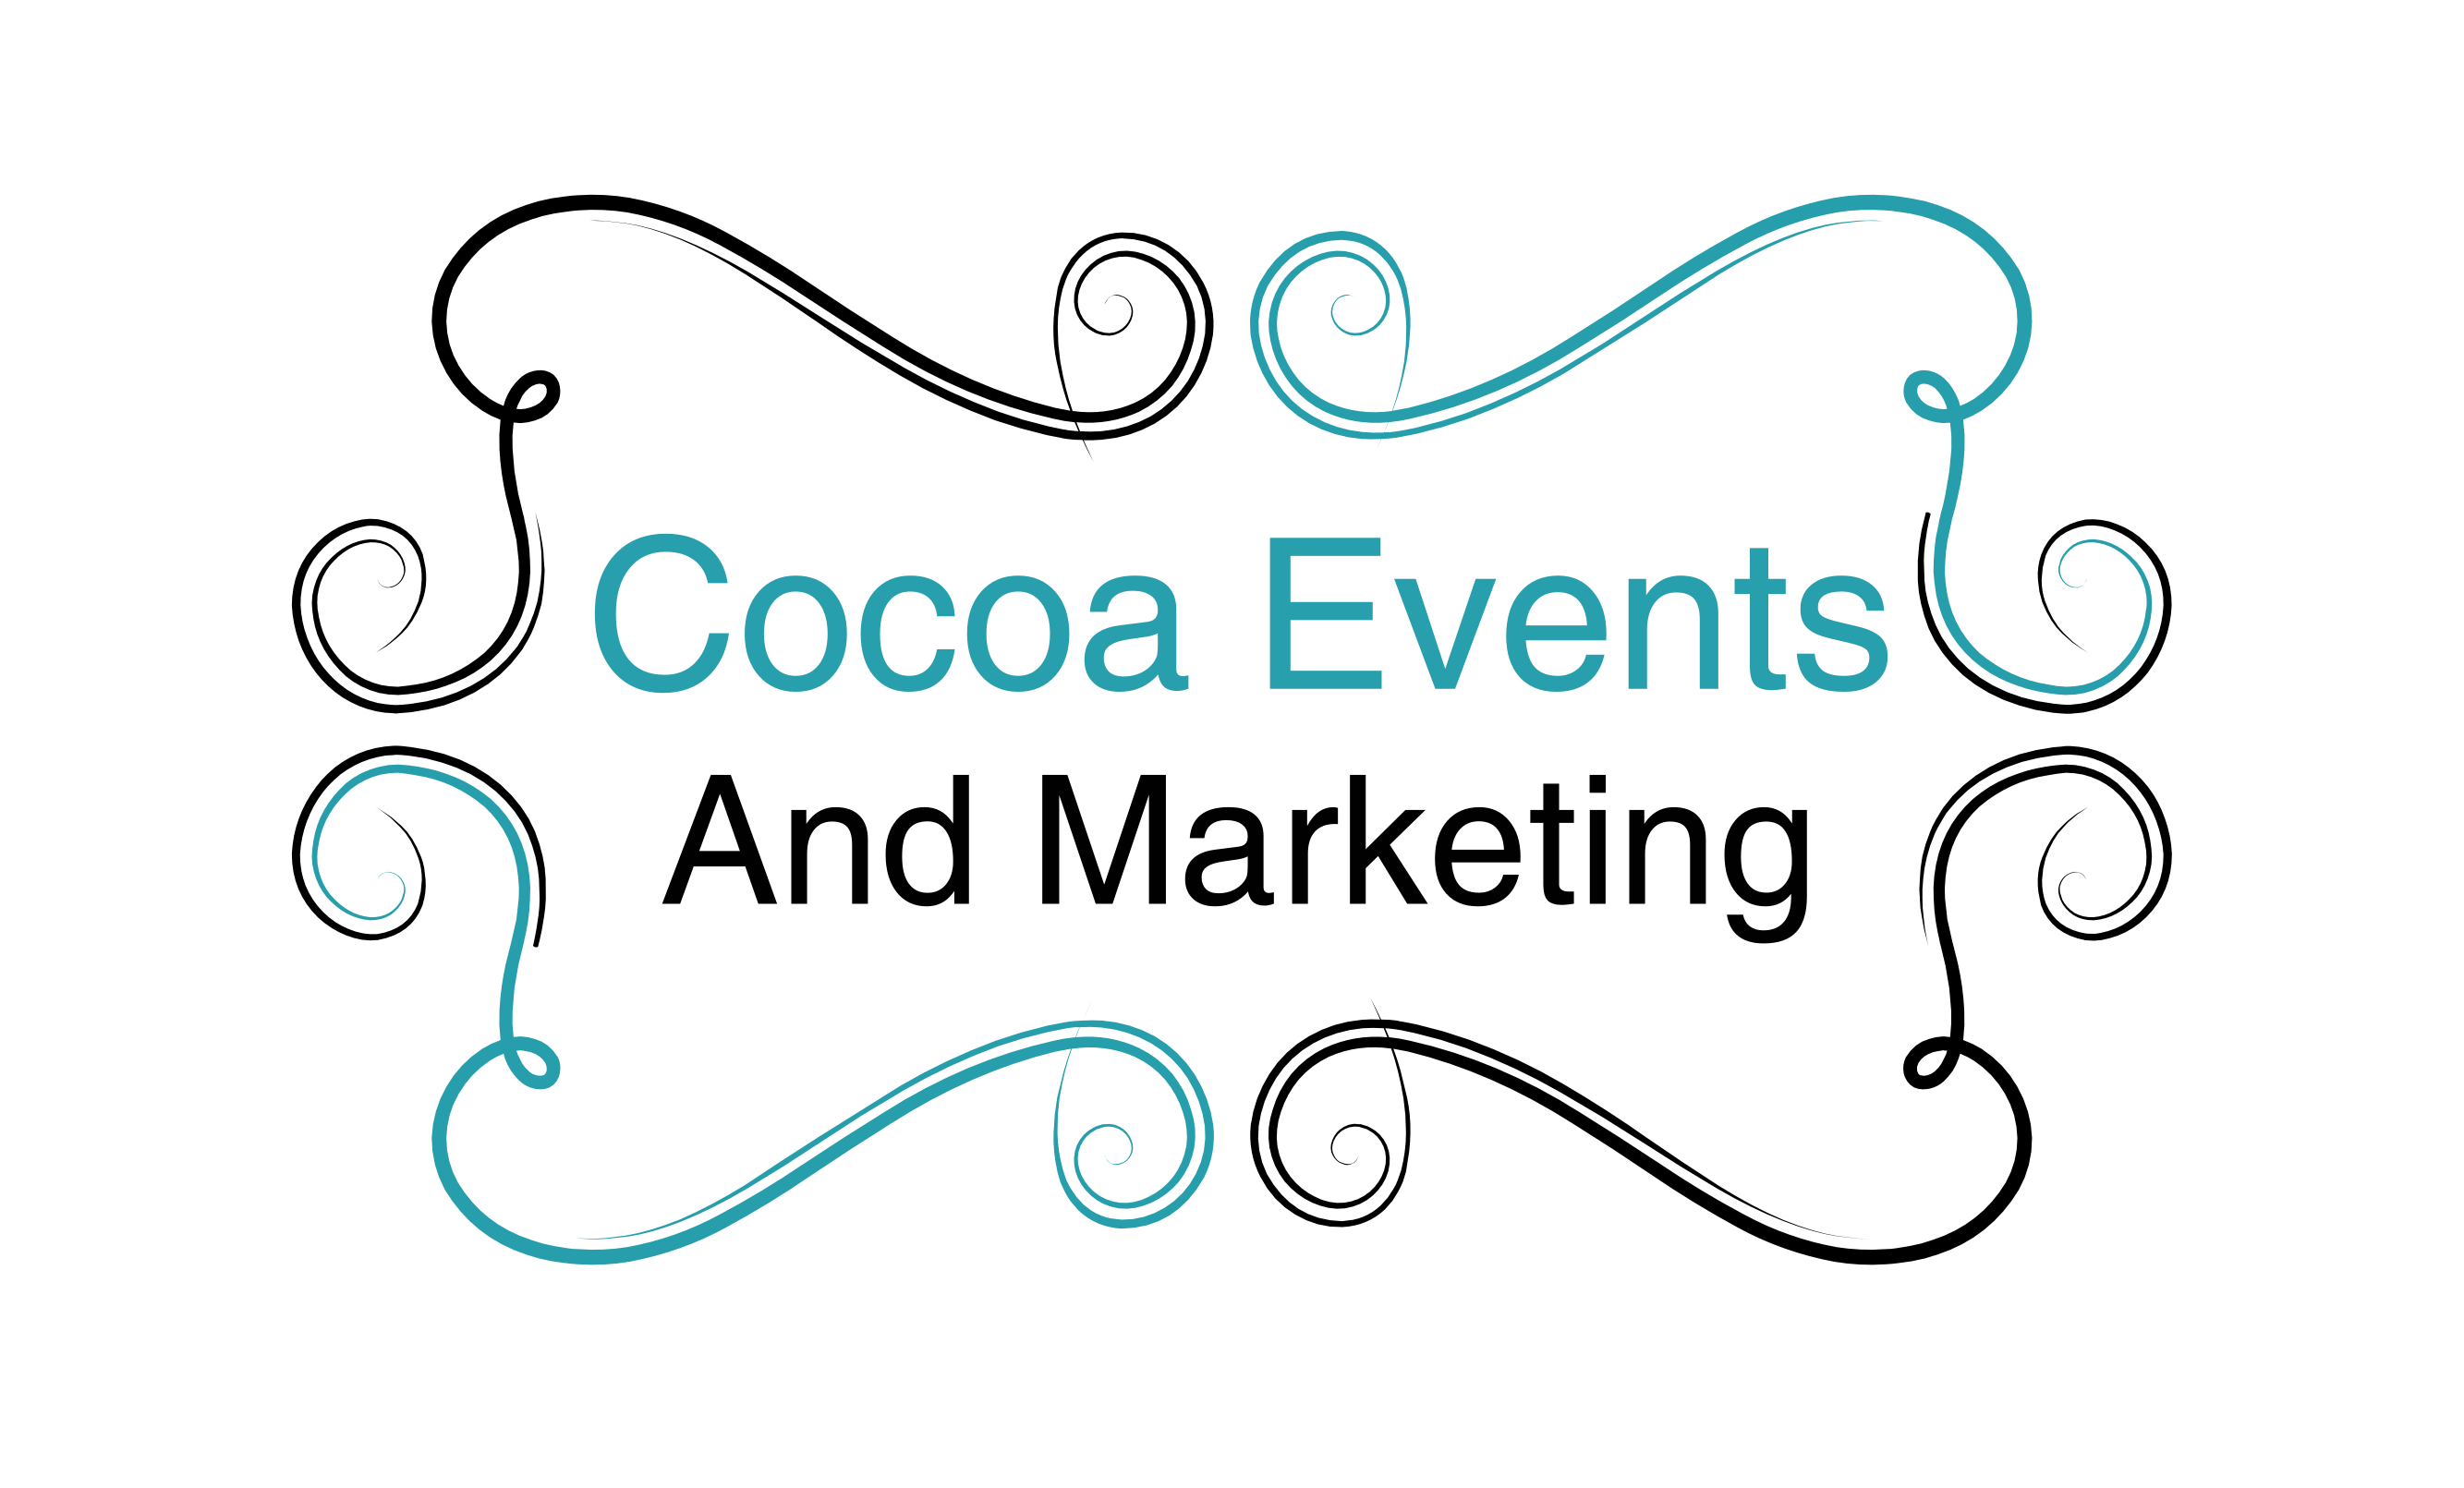 Cocoa Events and Marketing